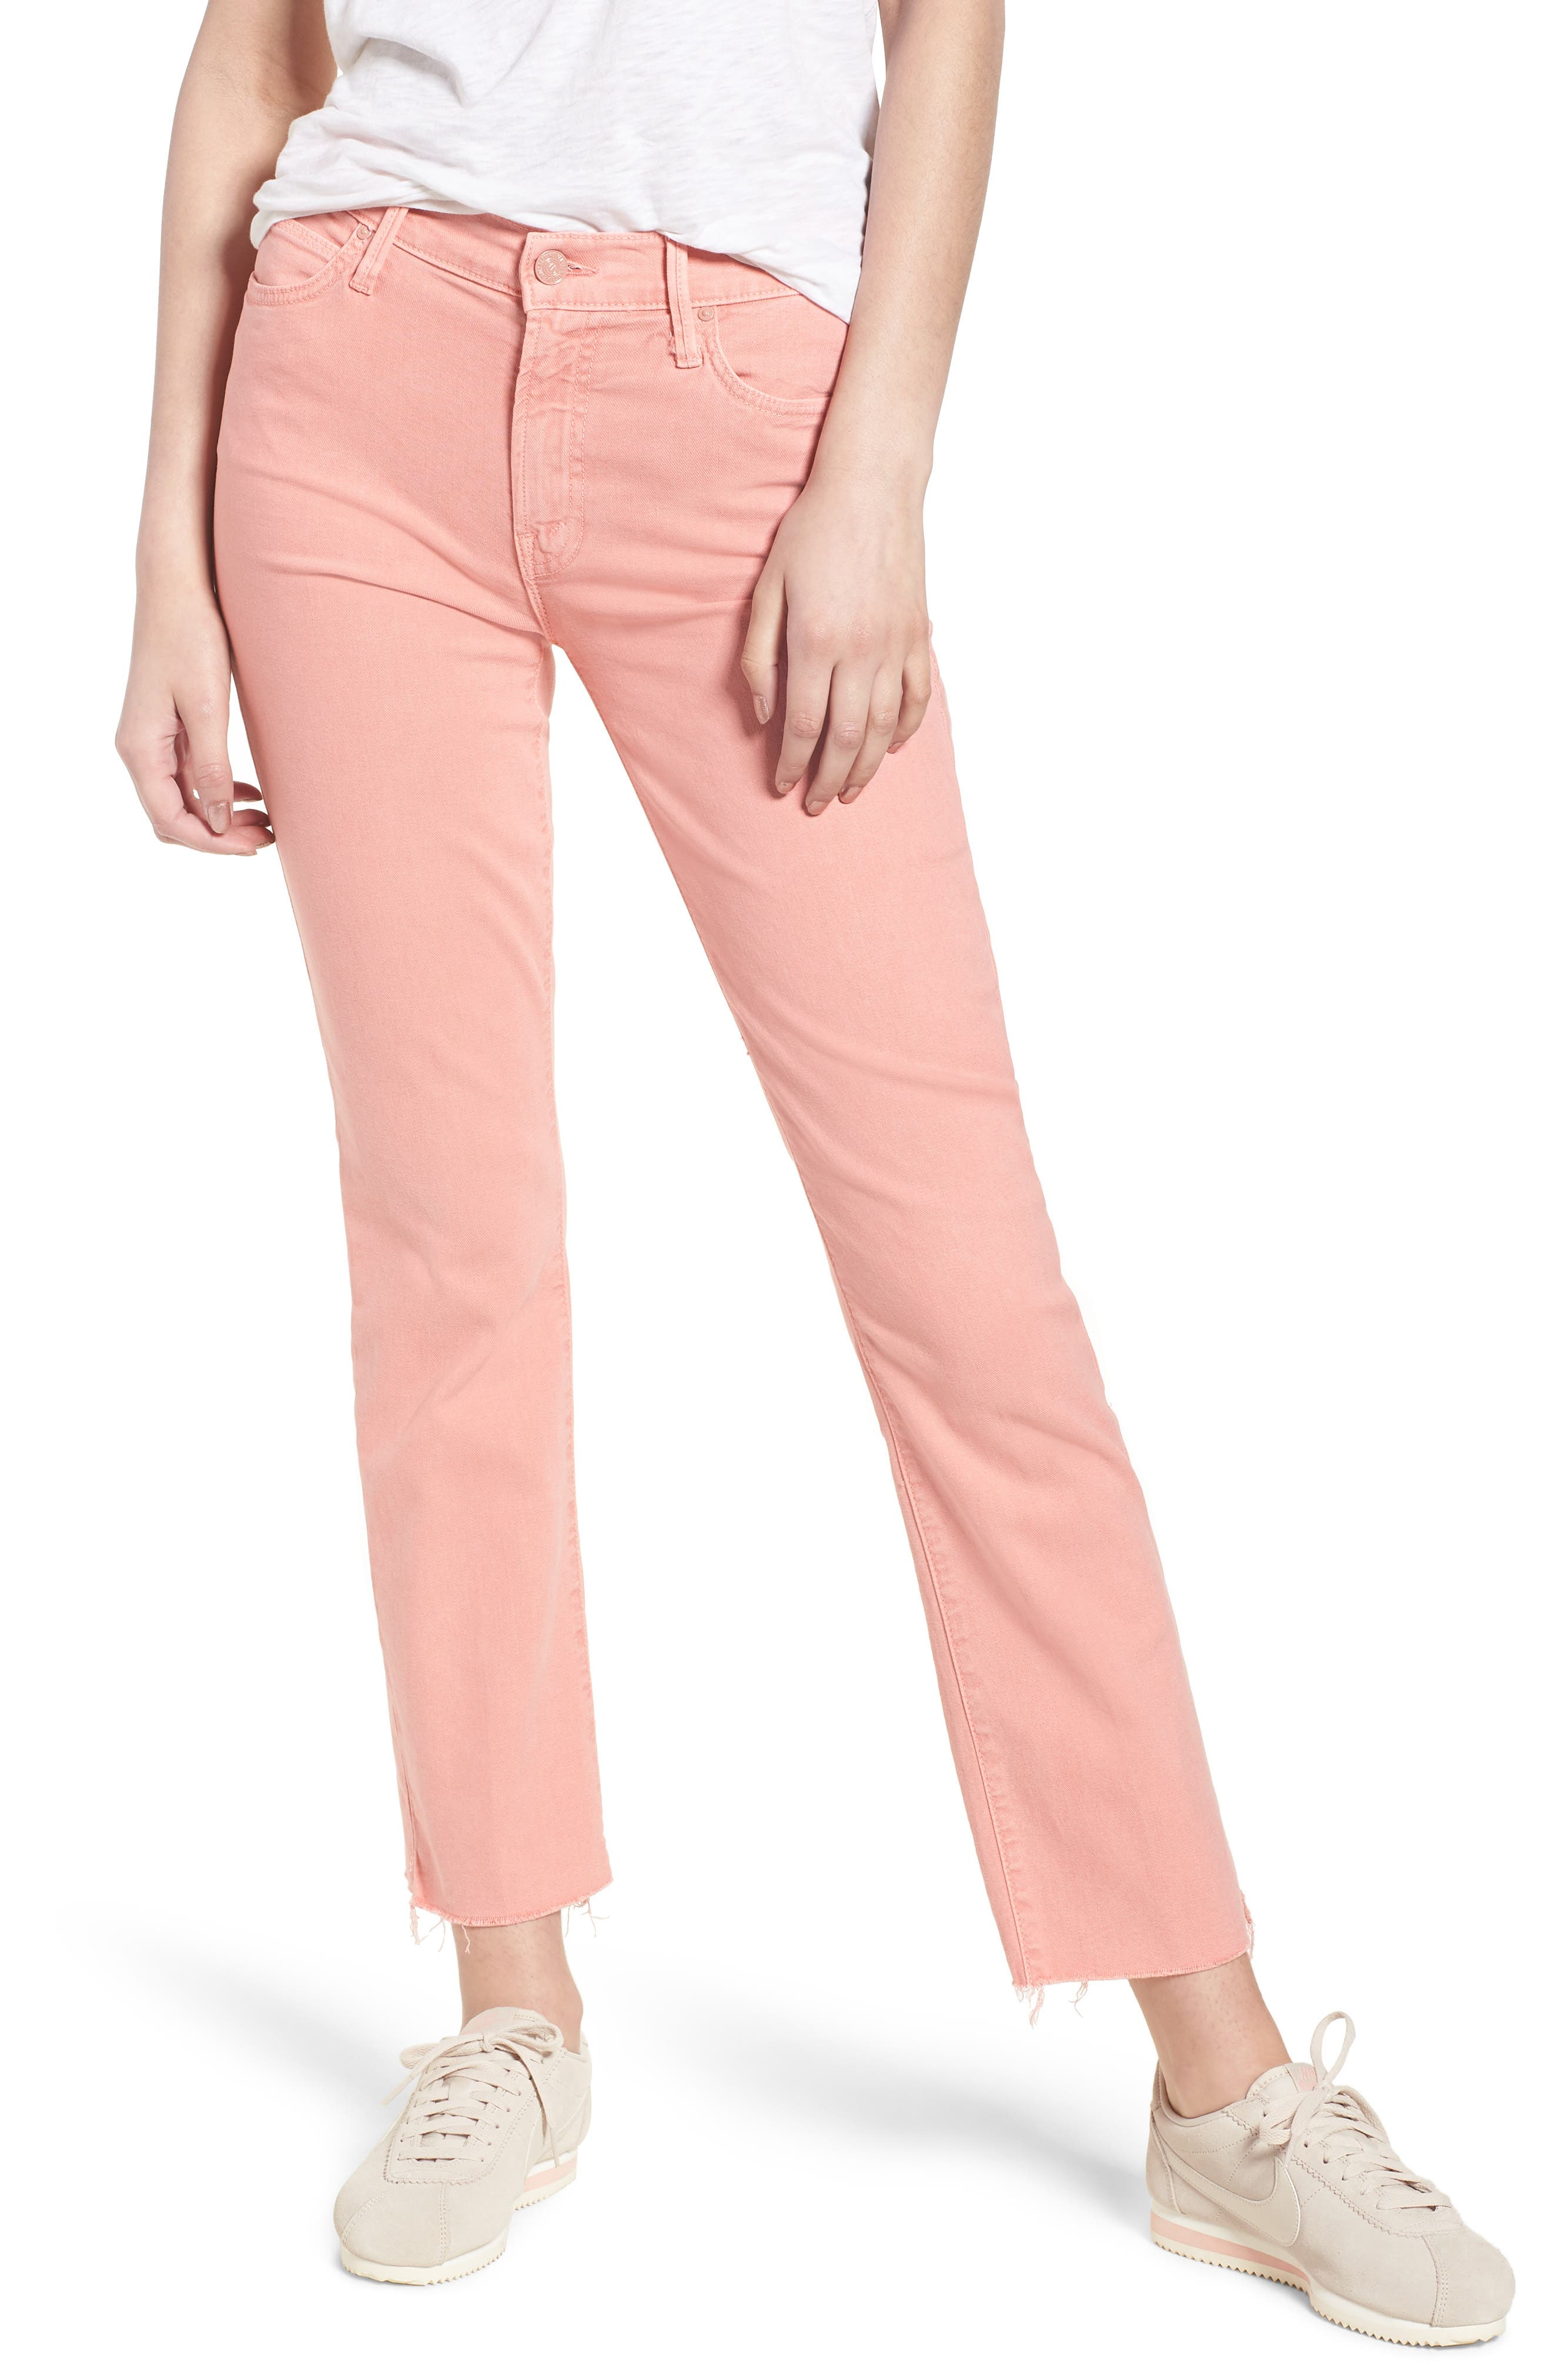 The Rascal Ankle Snippet Jeans,                             Main thumbnail 1, color,                             690